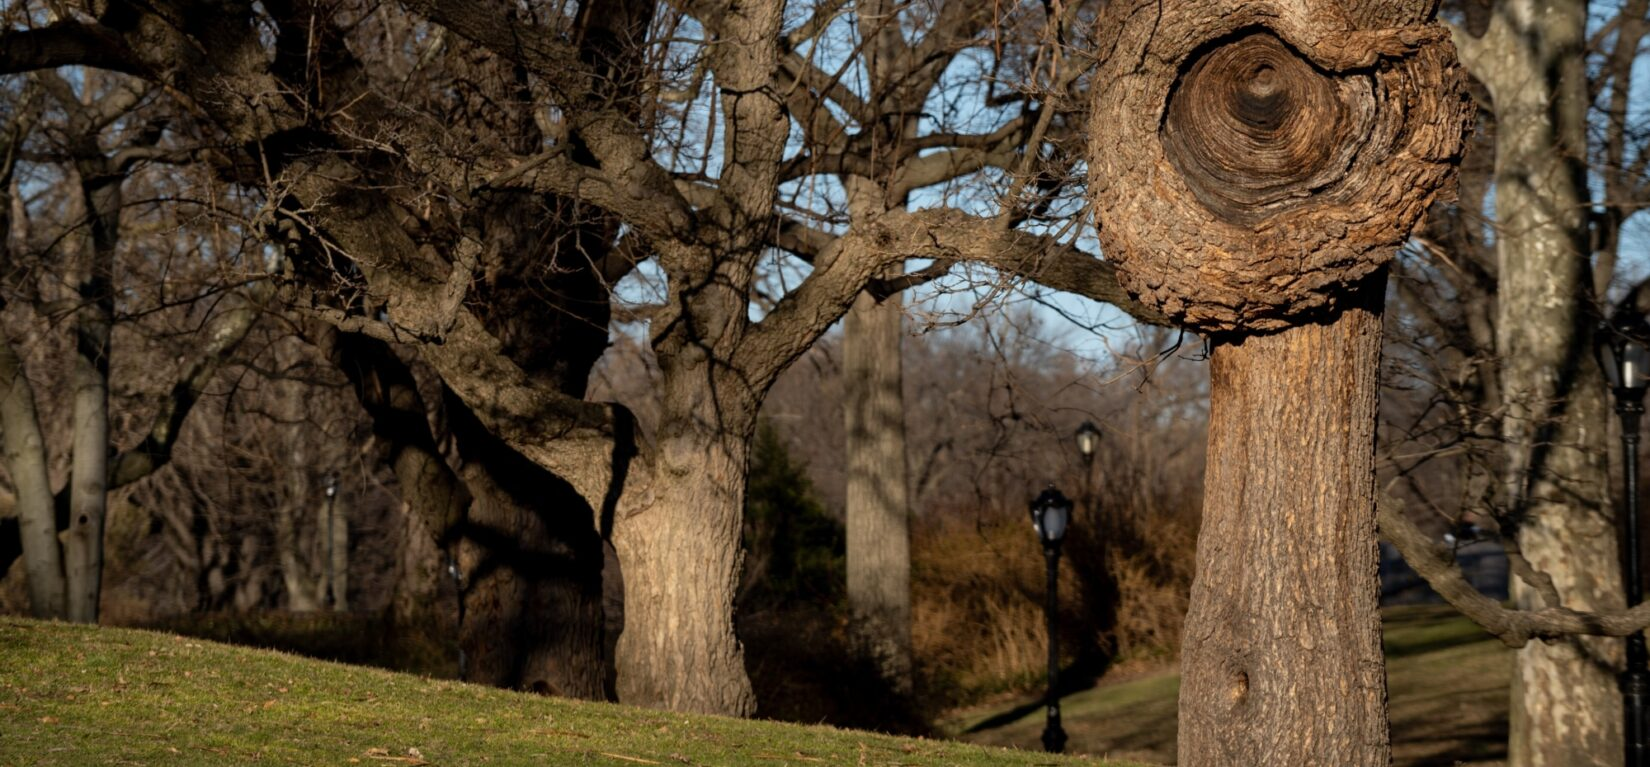 An interesting bark formation is the highlight of a shot of Frisbee Hill